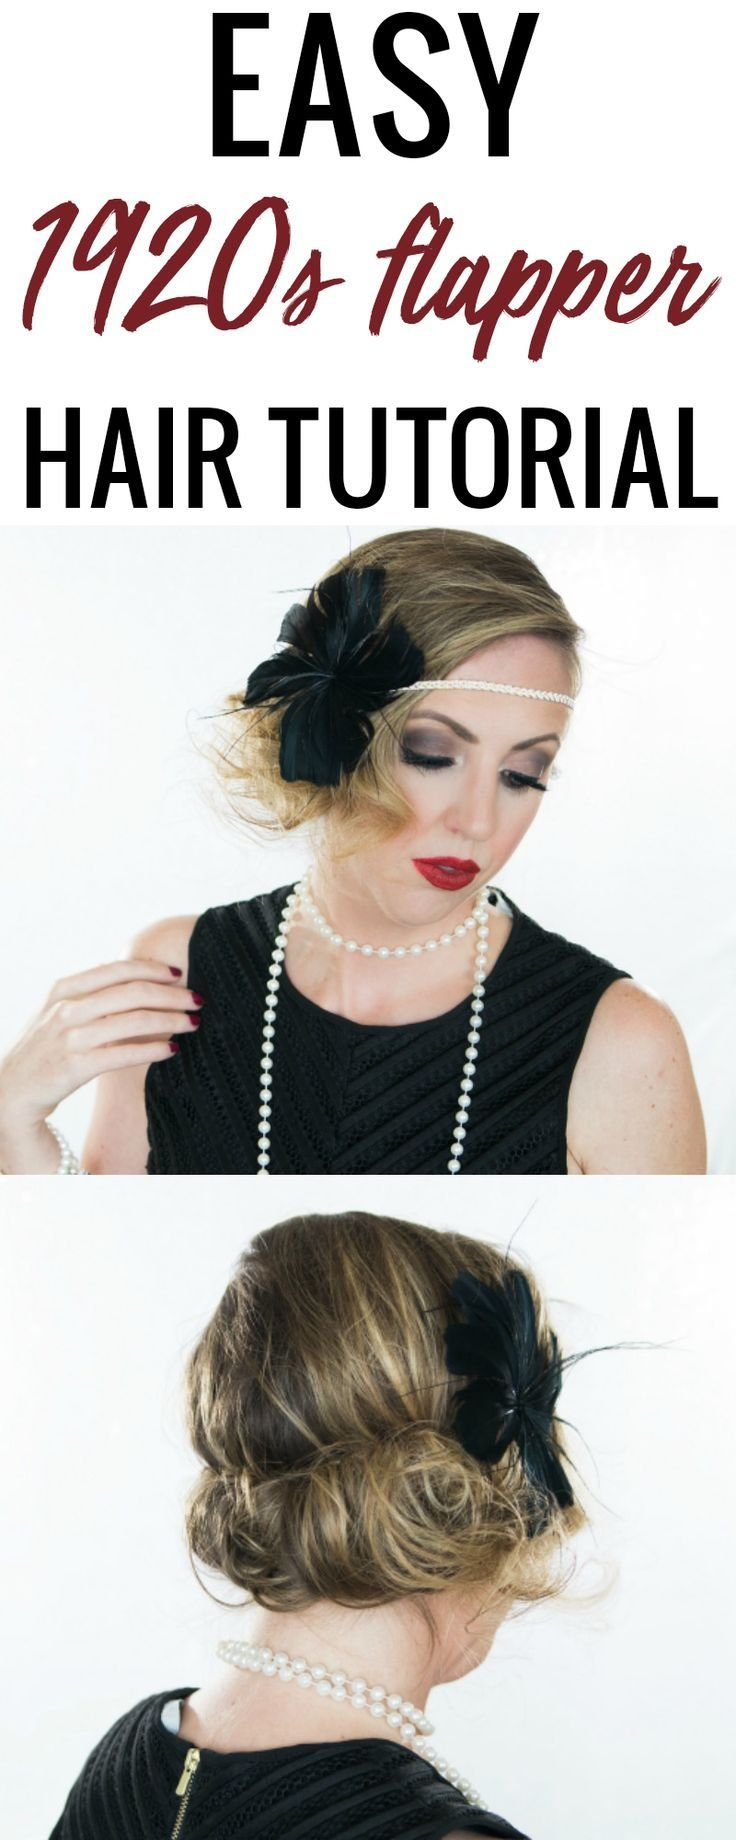 The Best Best 25 1920S Hair Tutorial Ideas On Pinterest 20S Hair Pictures